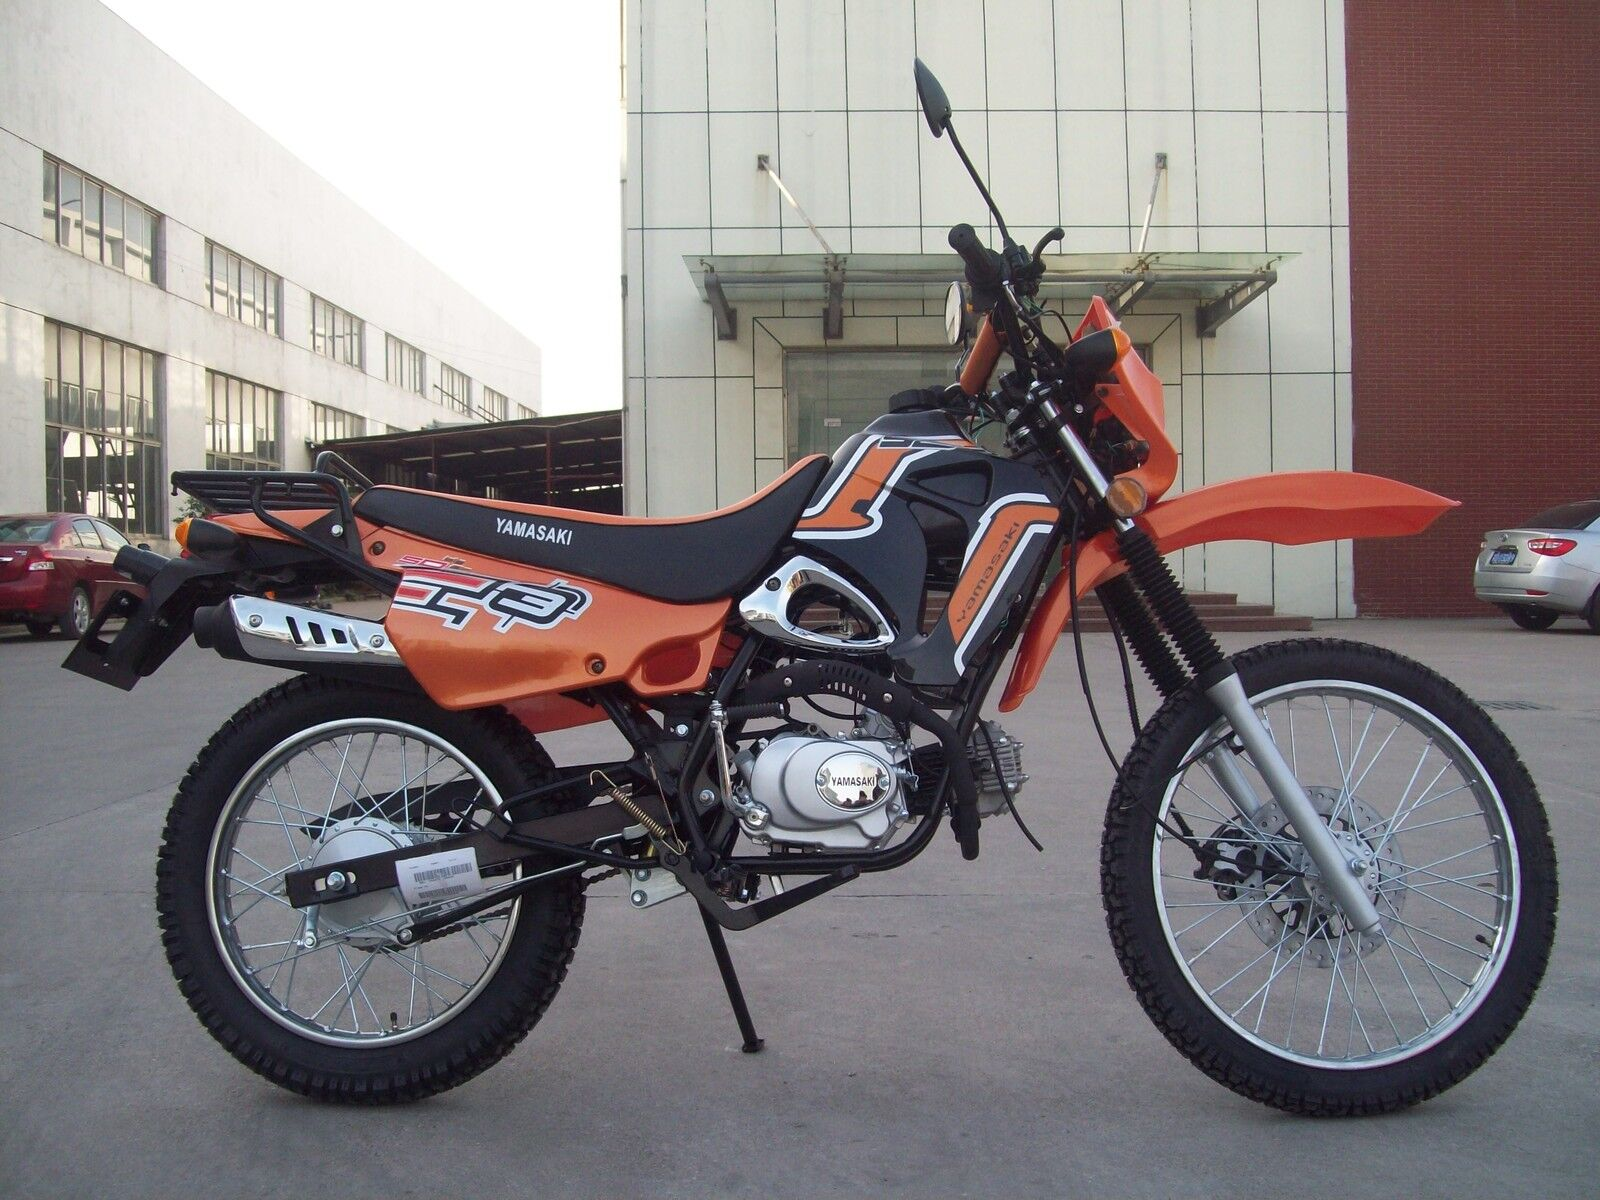 50ccm 4 takt enduro motorrad bike yamasaki ym50 gys 50 ccm moped roller neu ovp eur. Black Bedroom Furniture Sets. Home Design Ideas